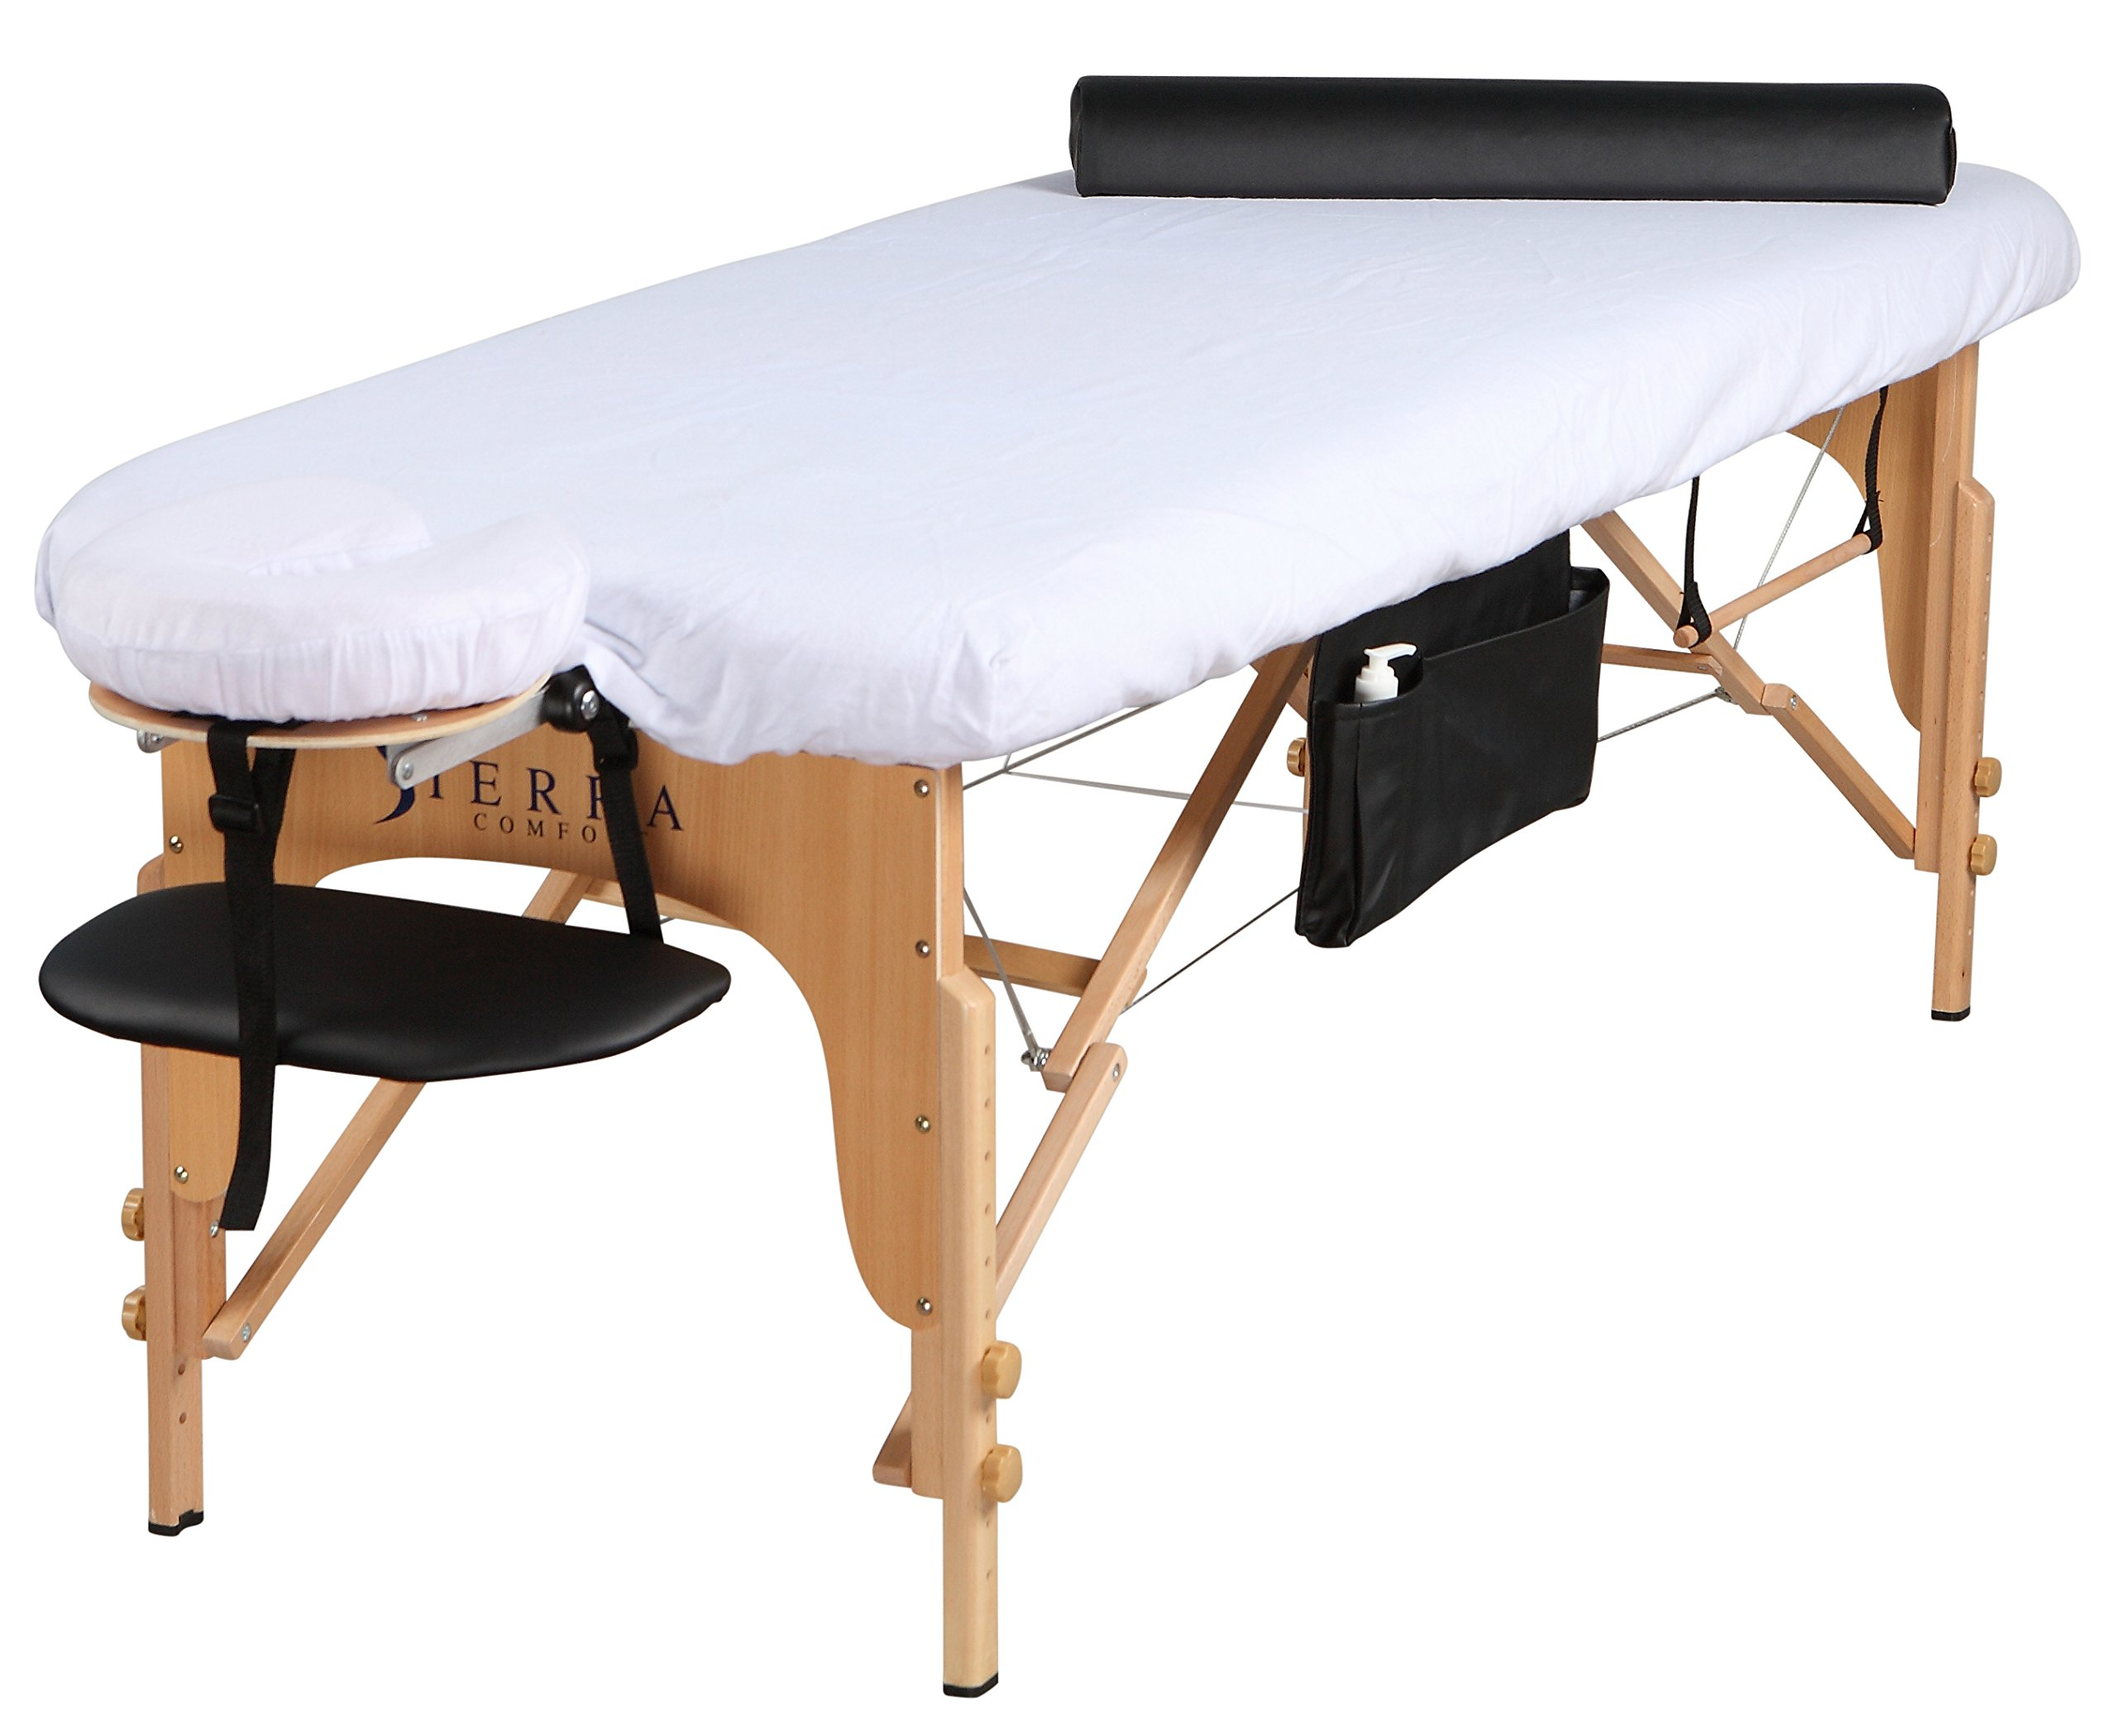 Sierra Comfort All-Inclusive Portable Massage Table by SierraComfort (Image #2)